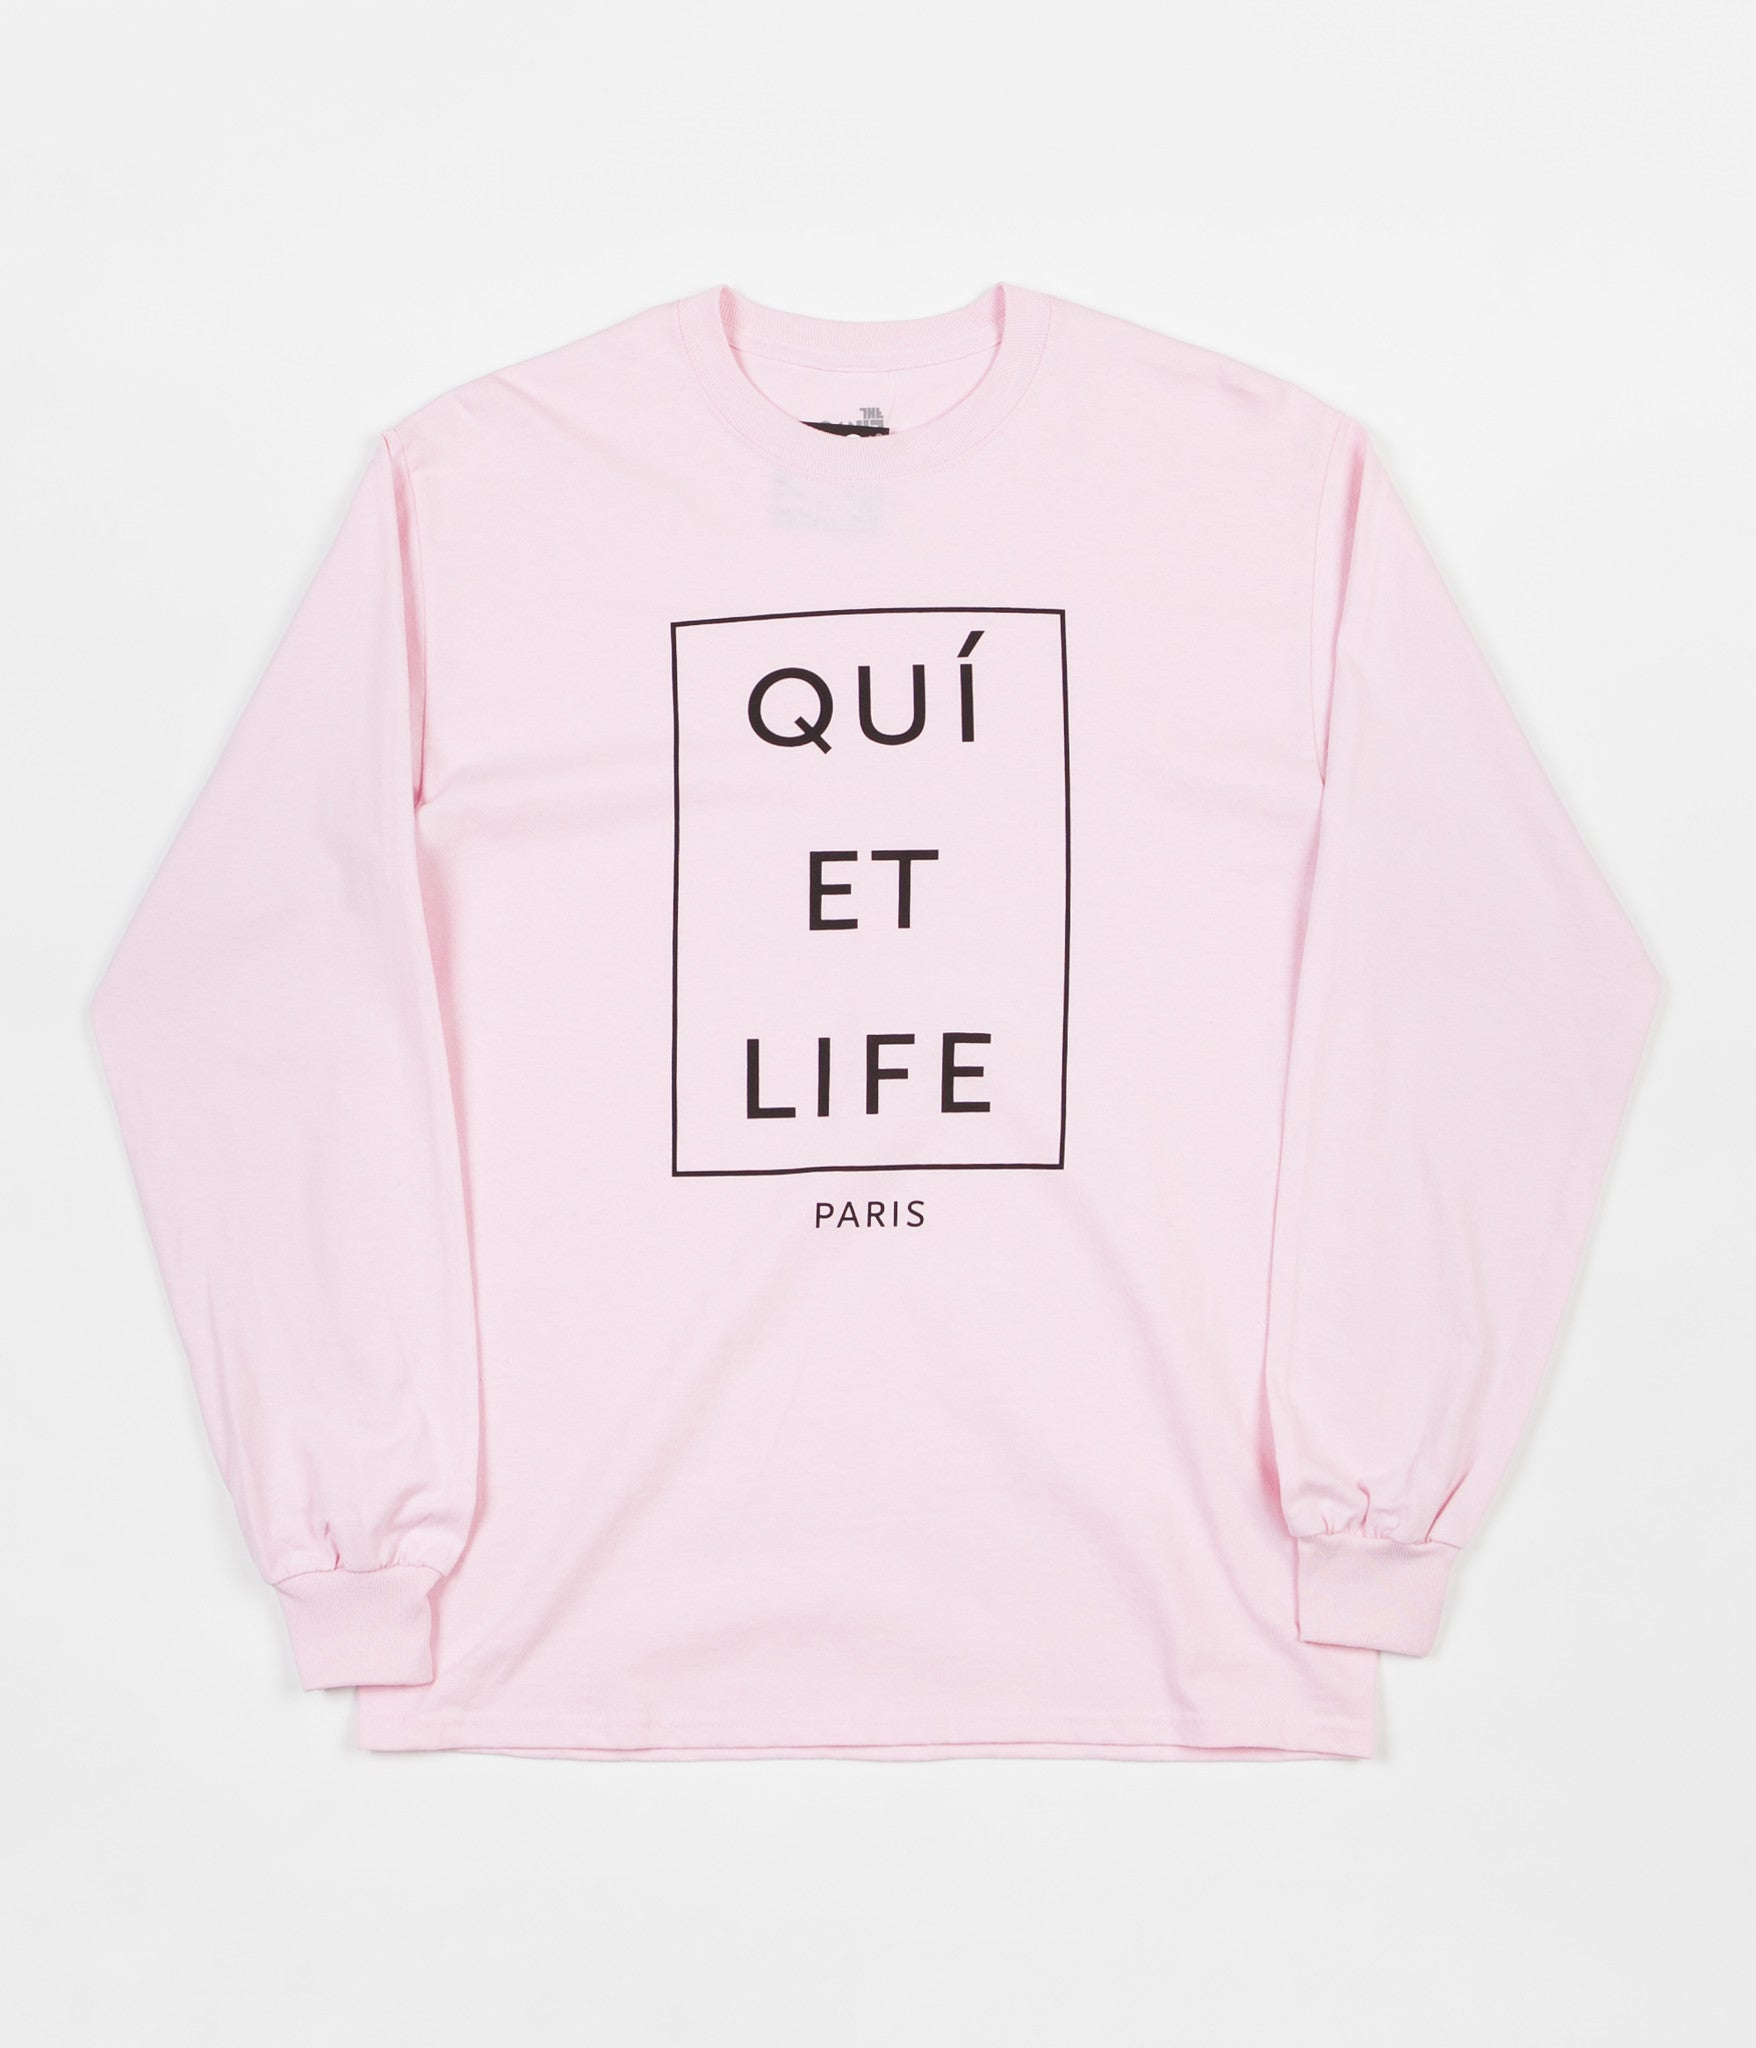 The Quiet Life Paris Long Sleeve T-Shirt - Pink